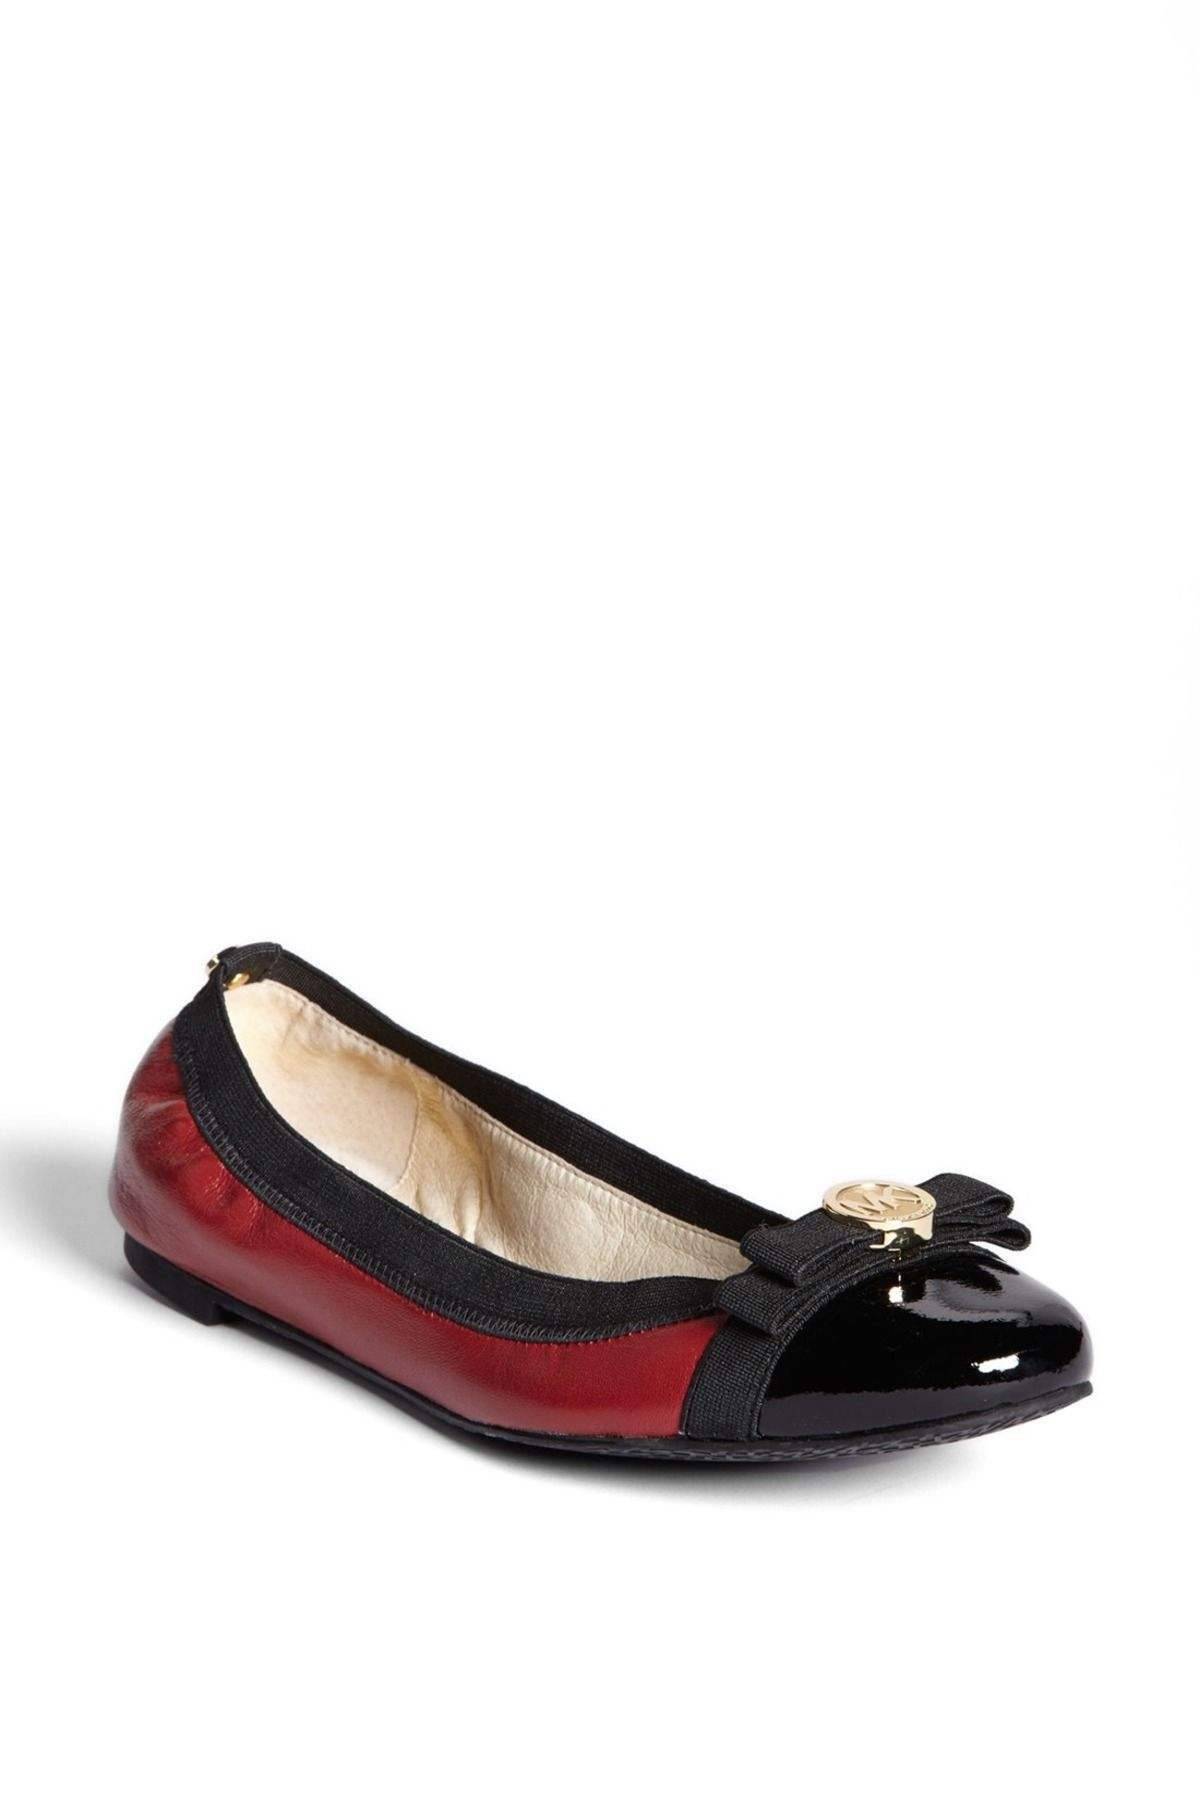 One moment please | Ballet flats